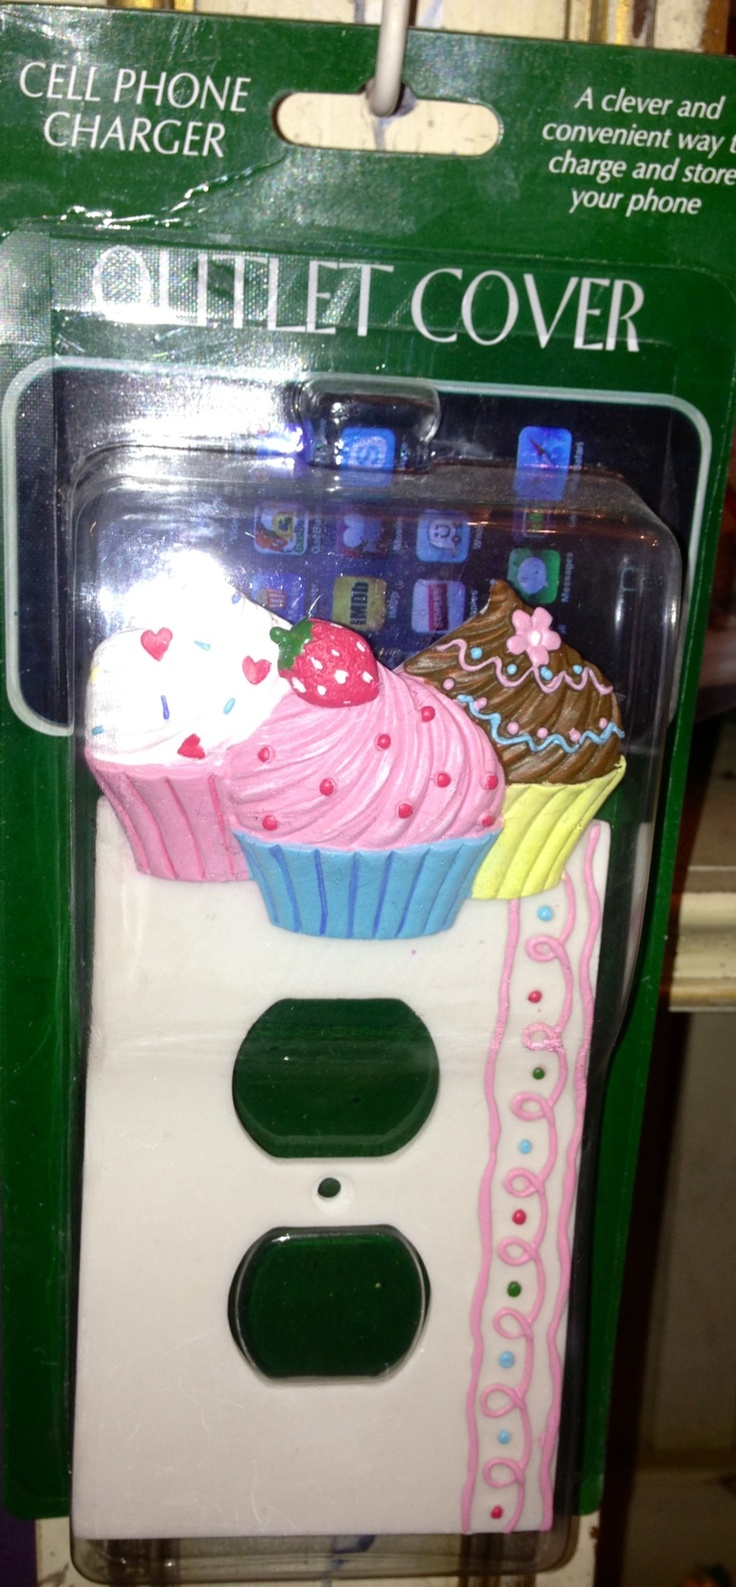 Cupcake outlet cover!